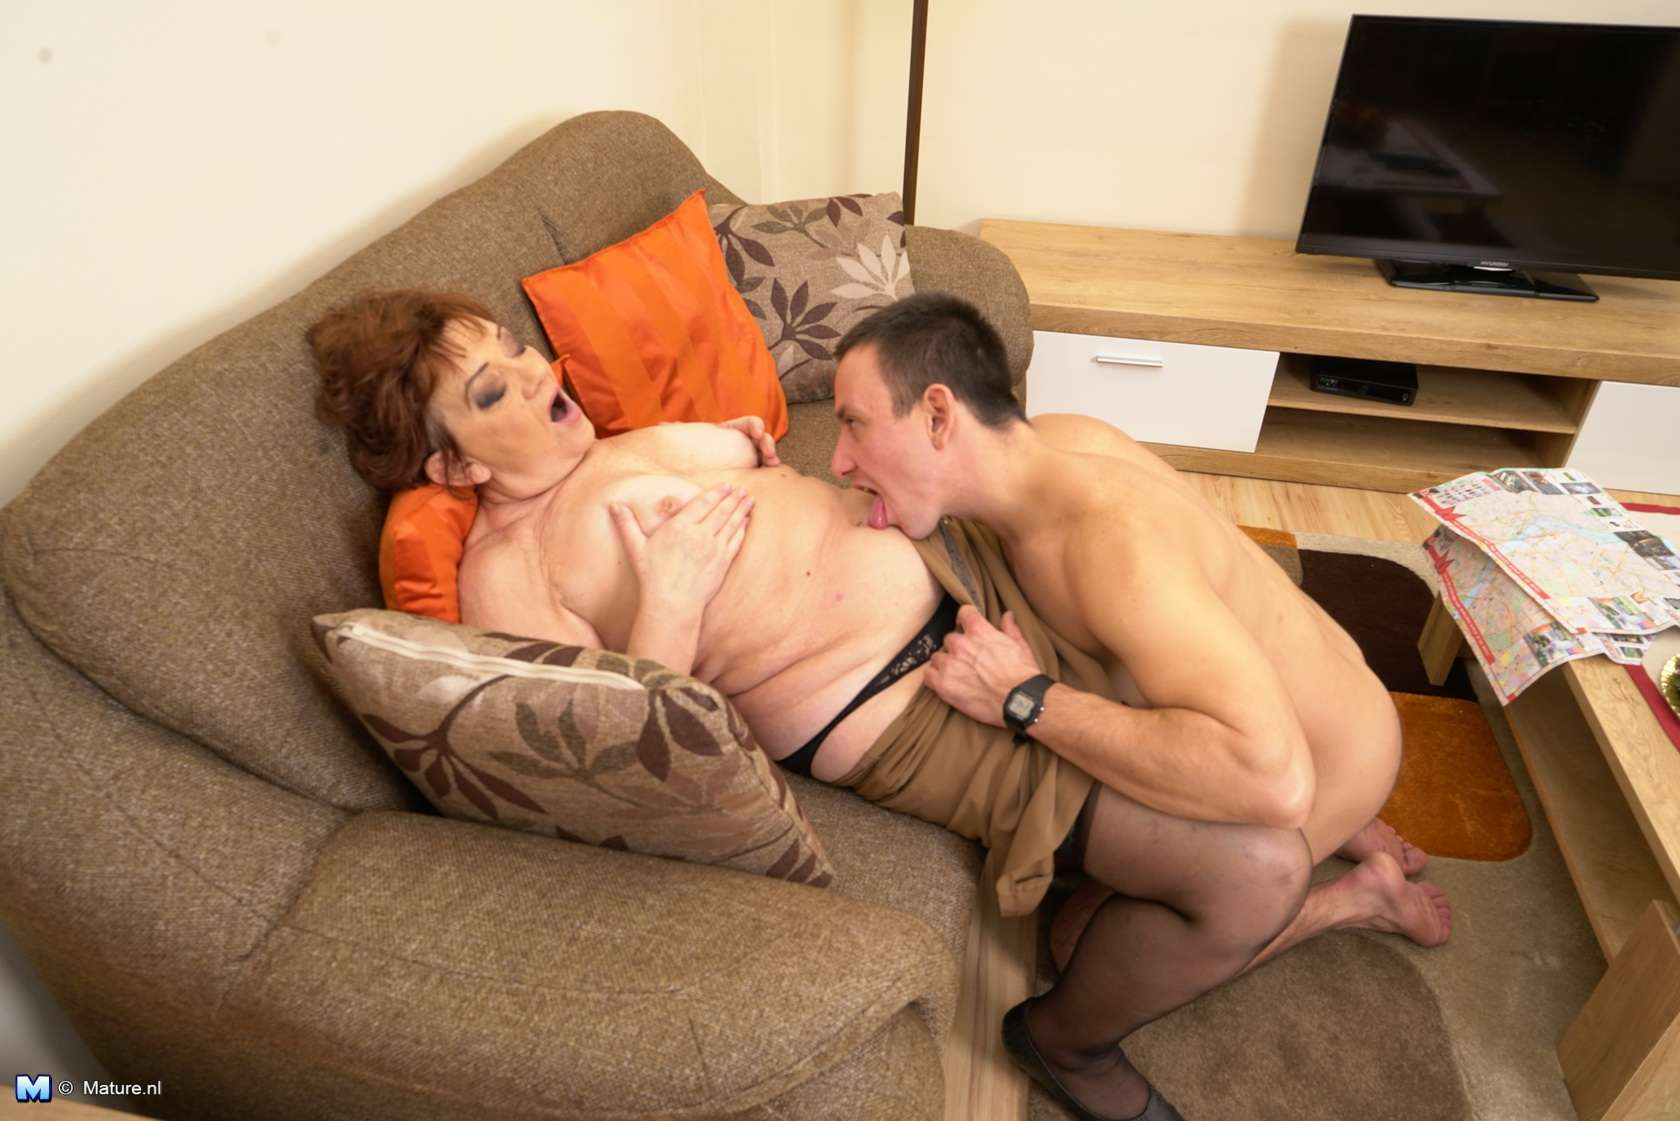 Robbie loves having hard sex with grannies and older horny women